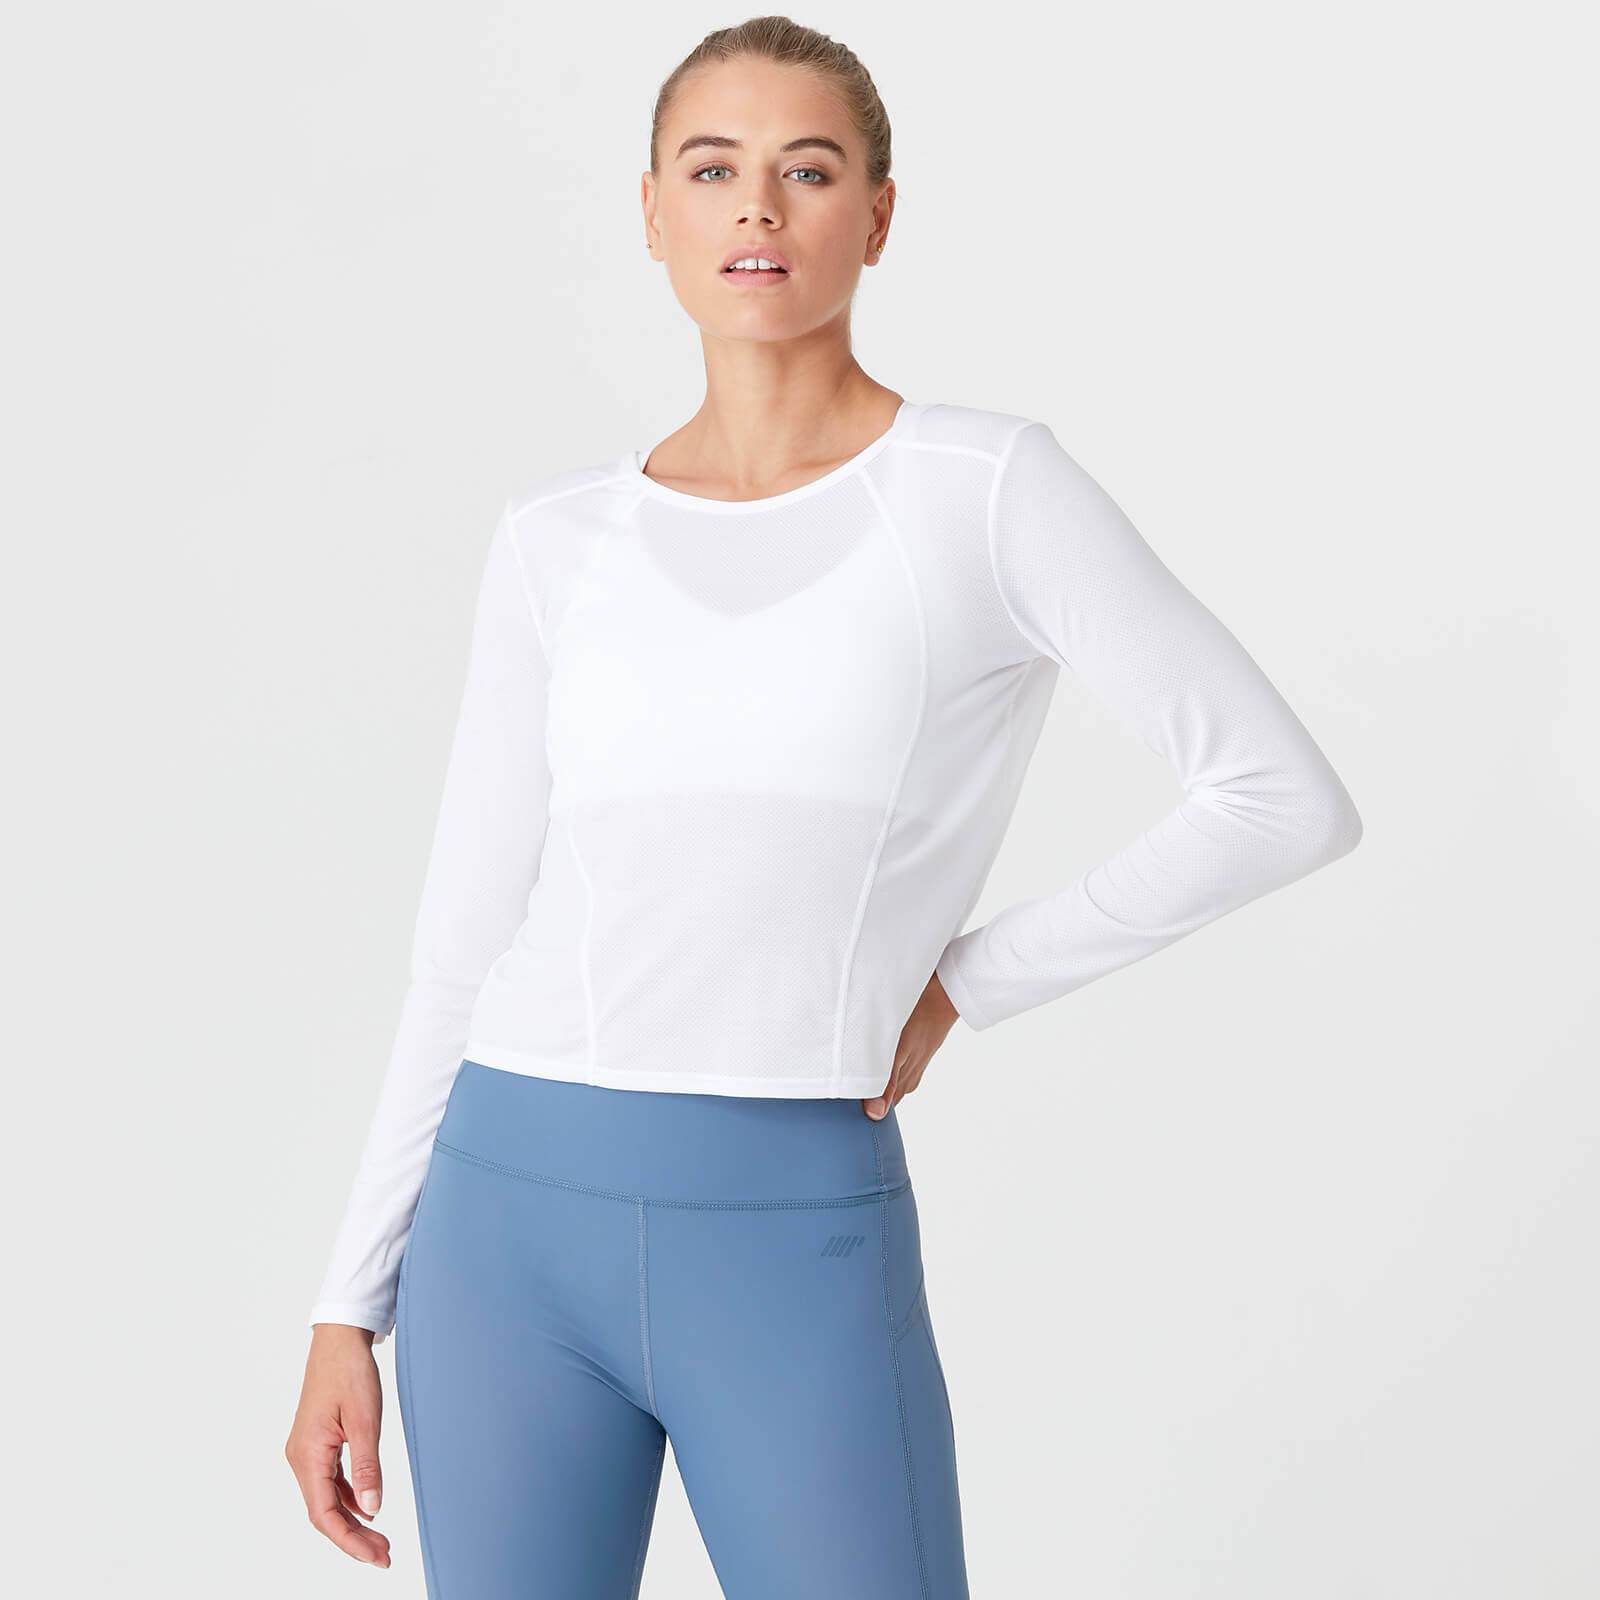 Myprotein Dry-Tech Long Sleeve T-Shirt - White - XL